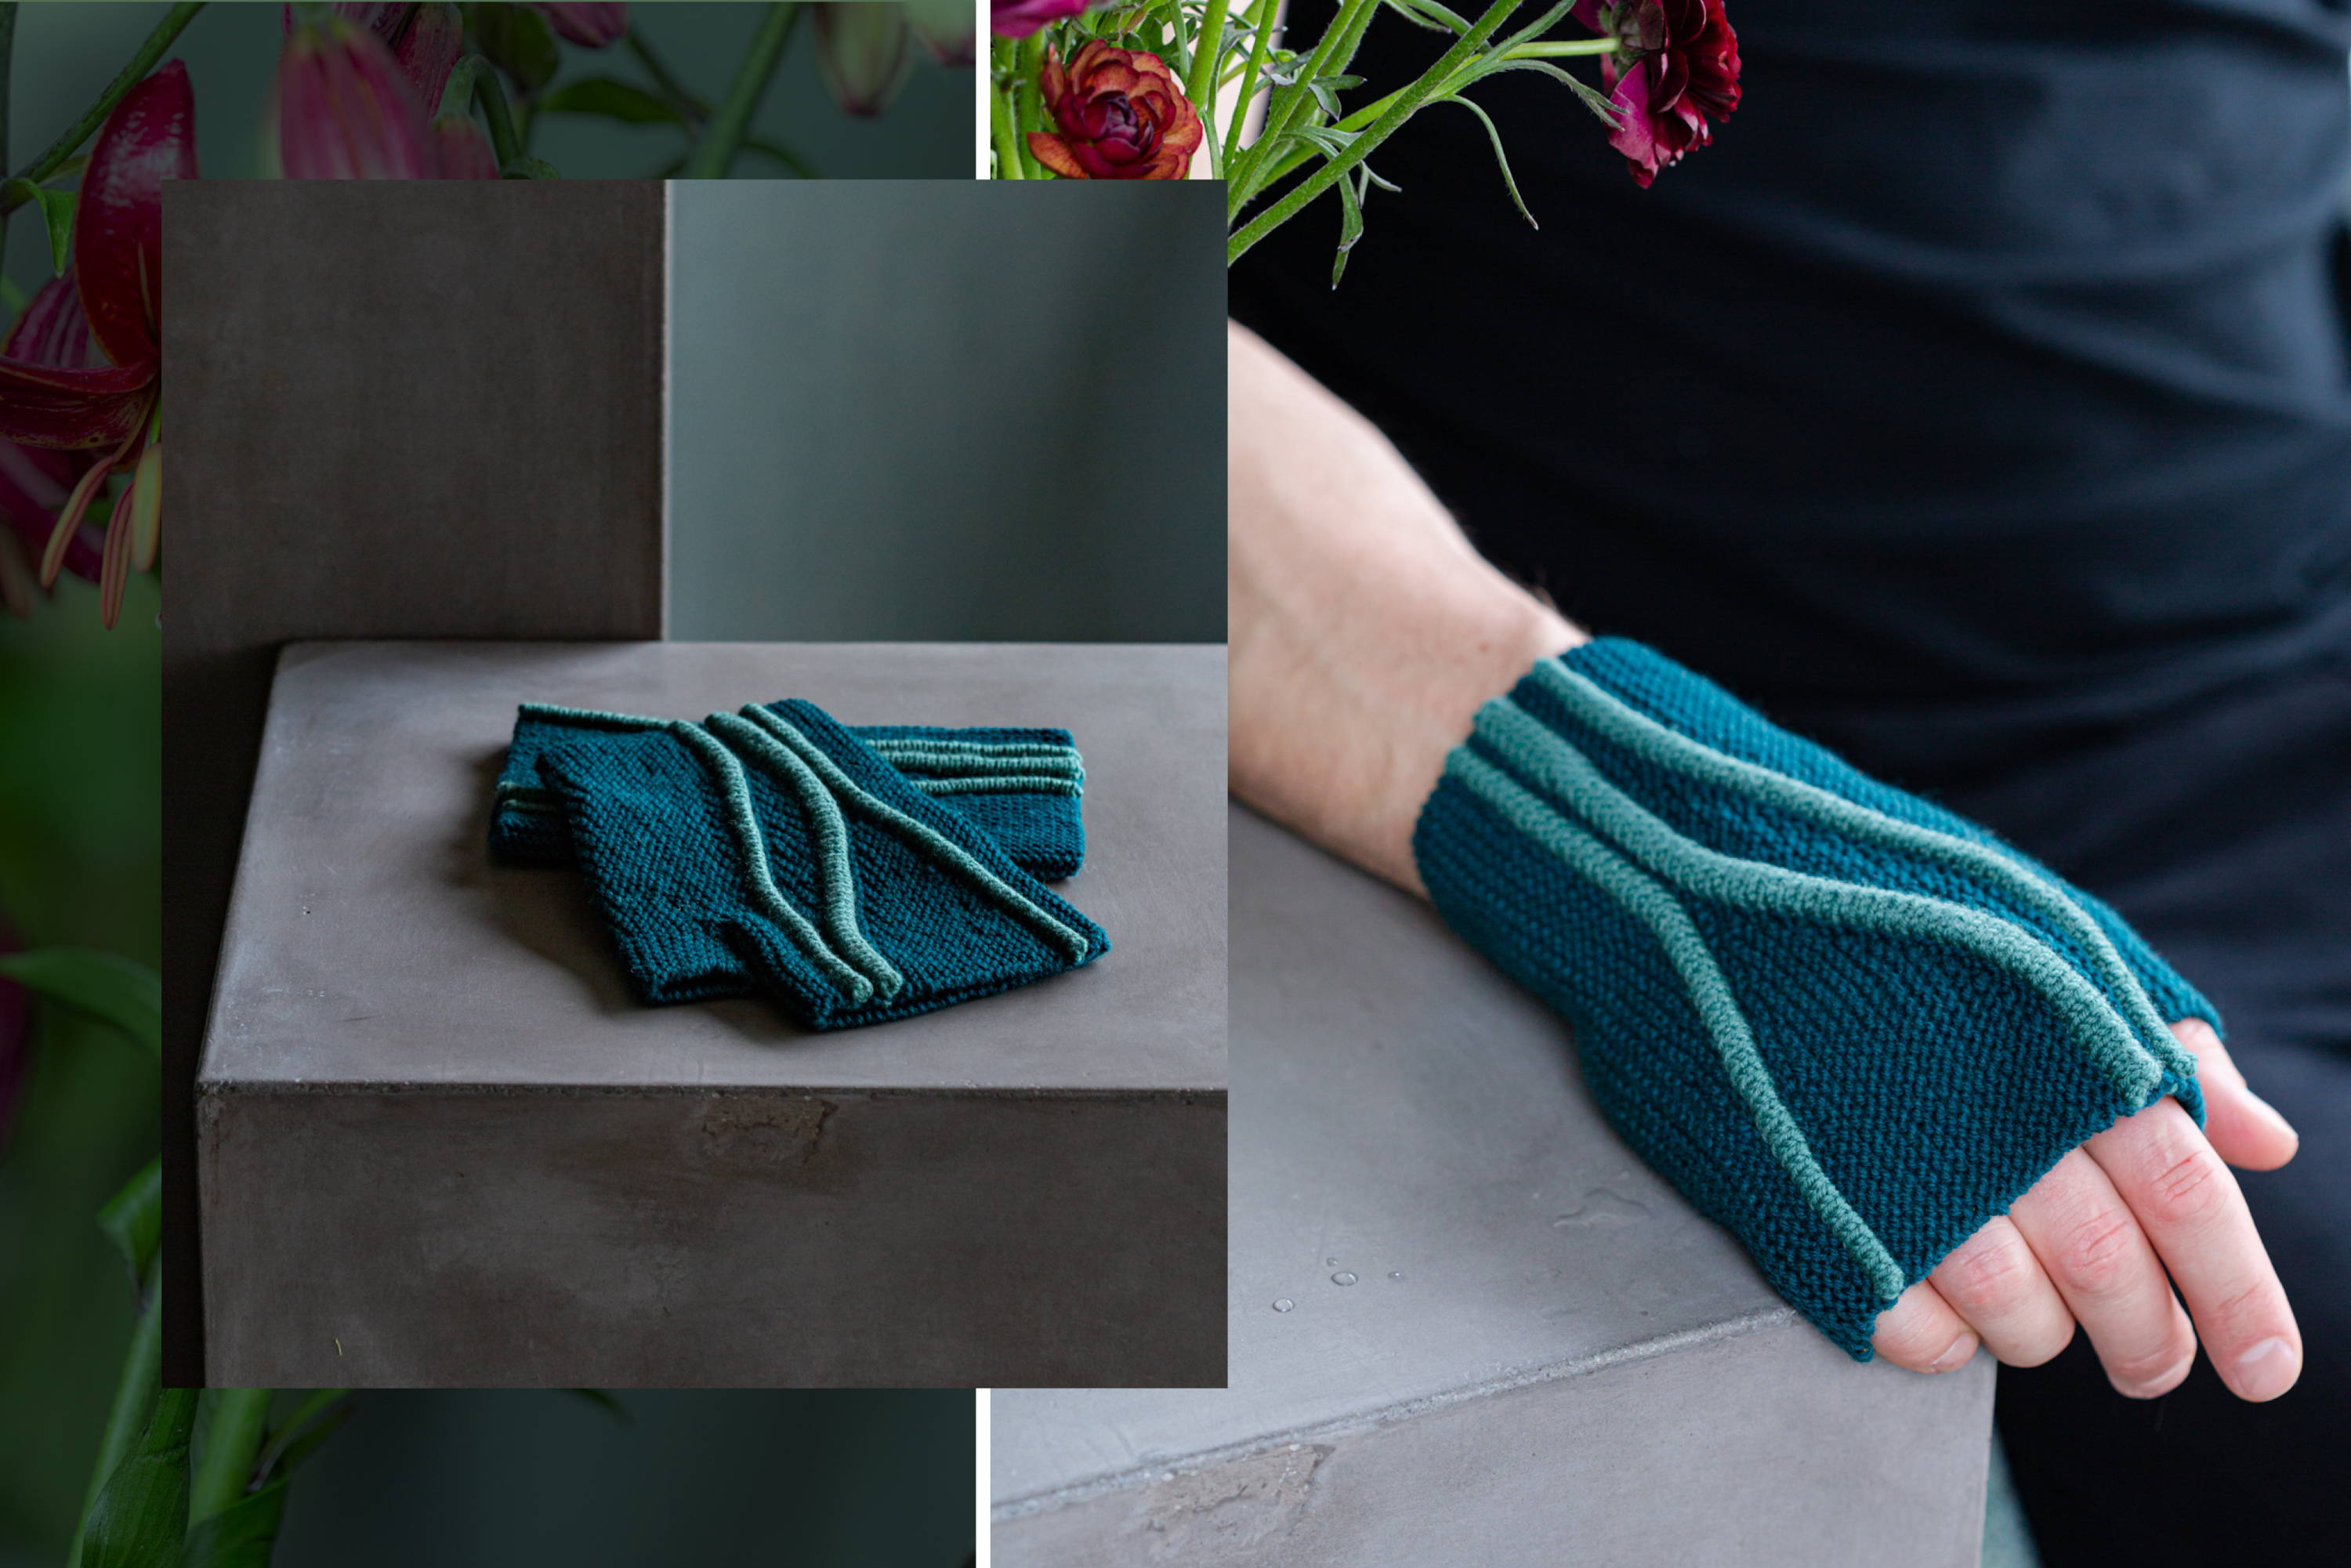 Image of Limn mitts lying flat on a shelf left, Brian modeling Limn mitt right